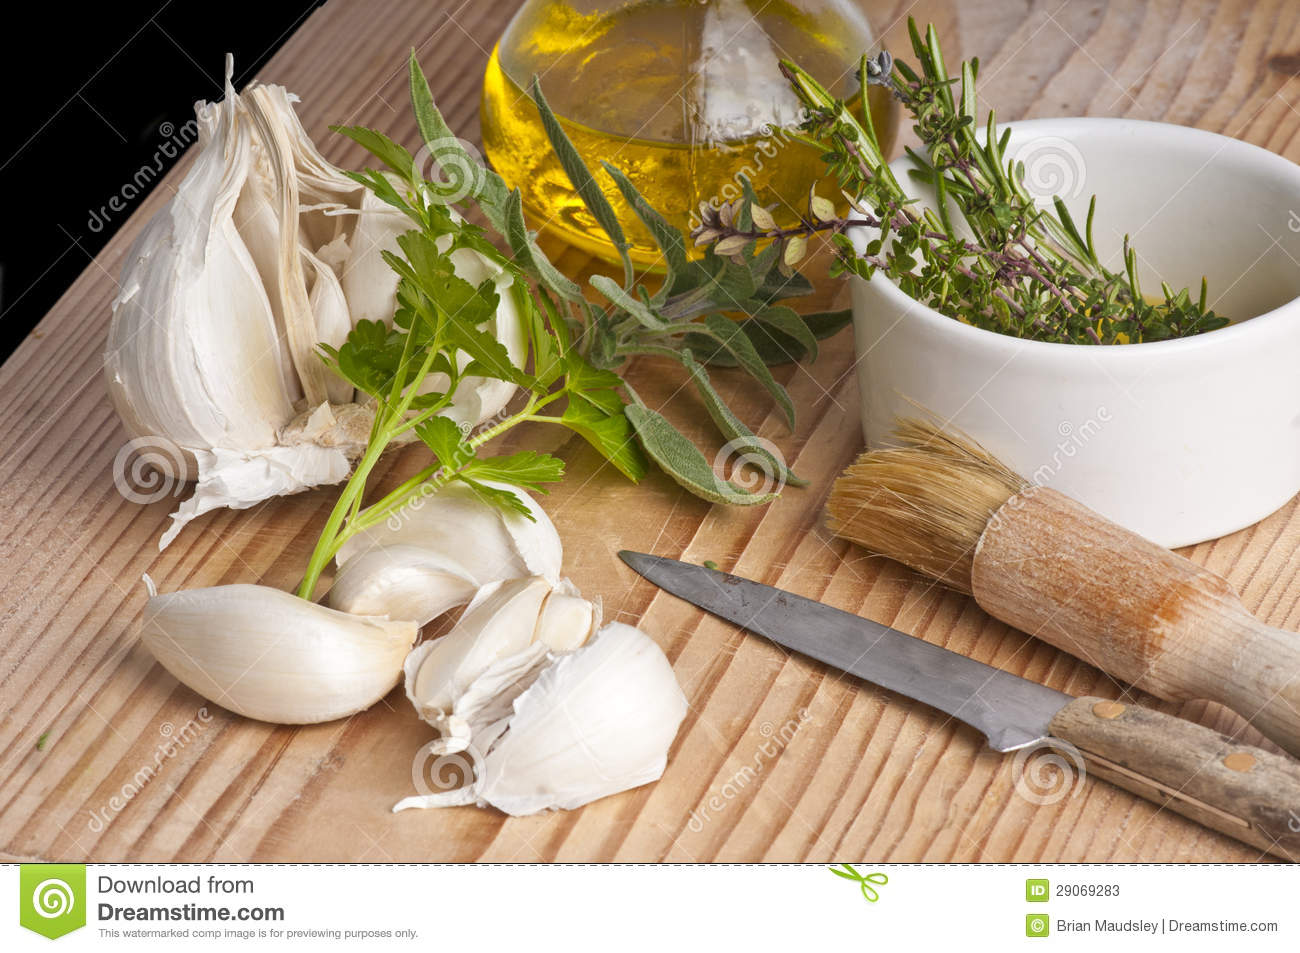 ... , parsley, sage, rosemary and thyme with extra virgen olive oil